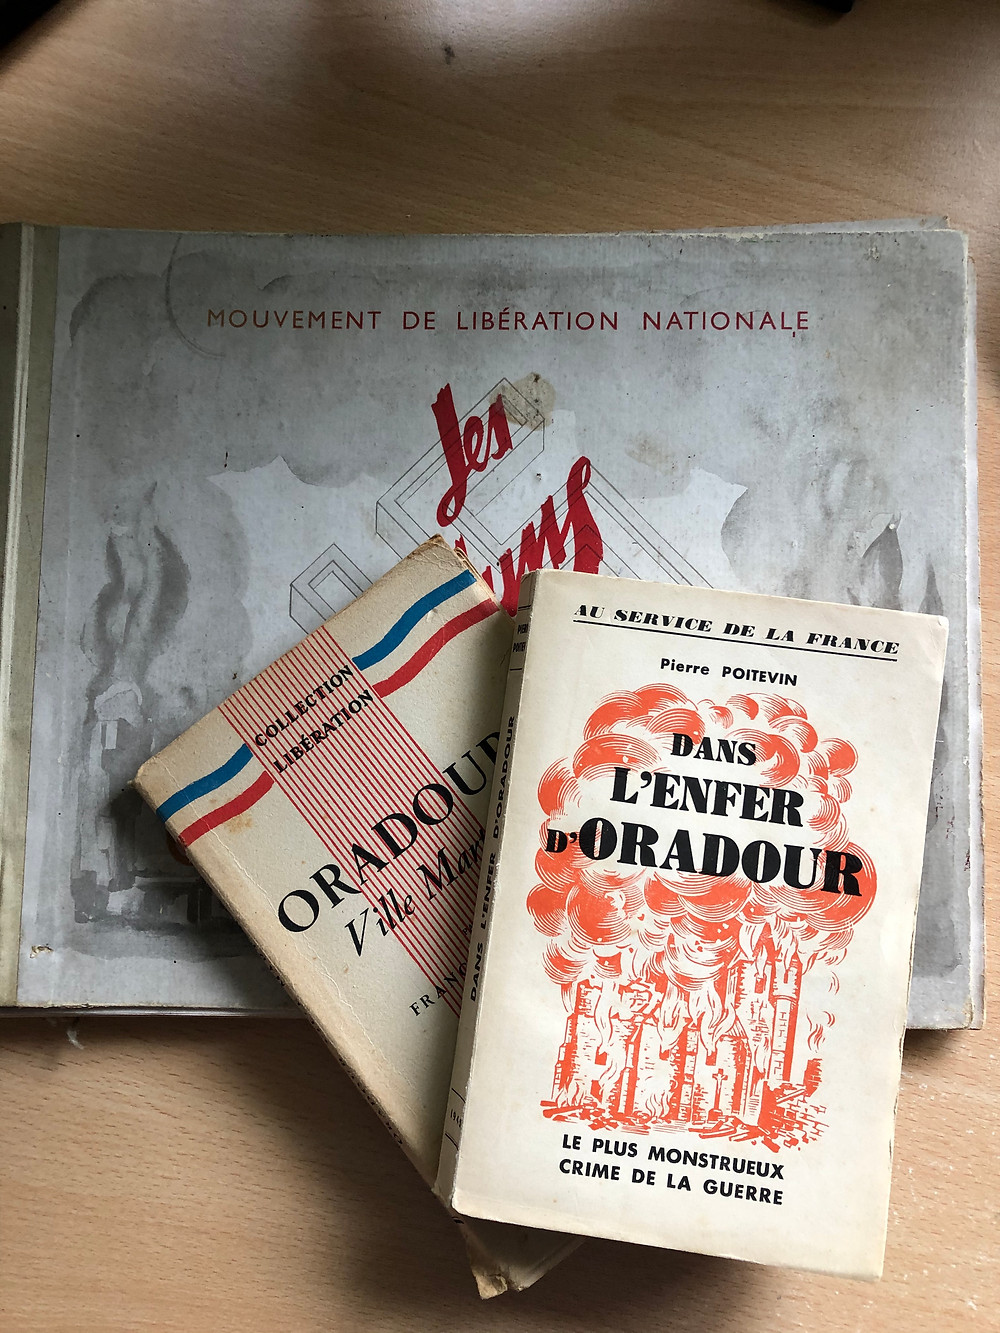 Some of the first books published about the massacre